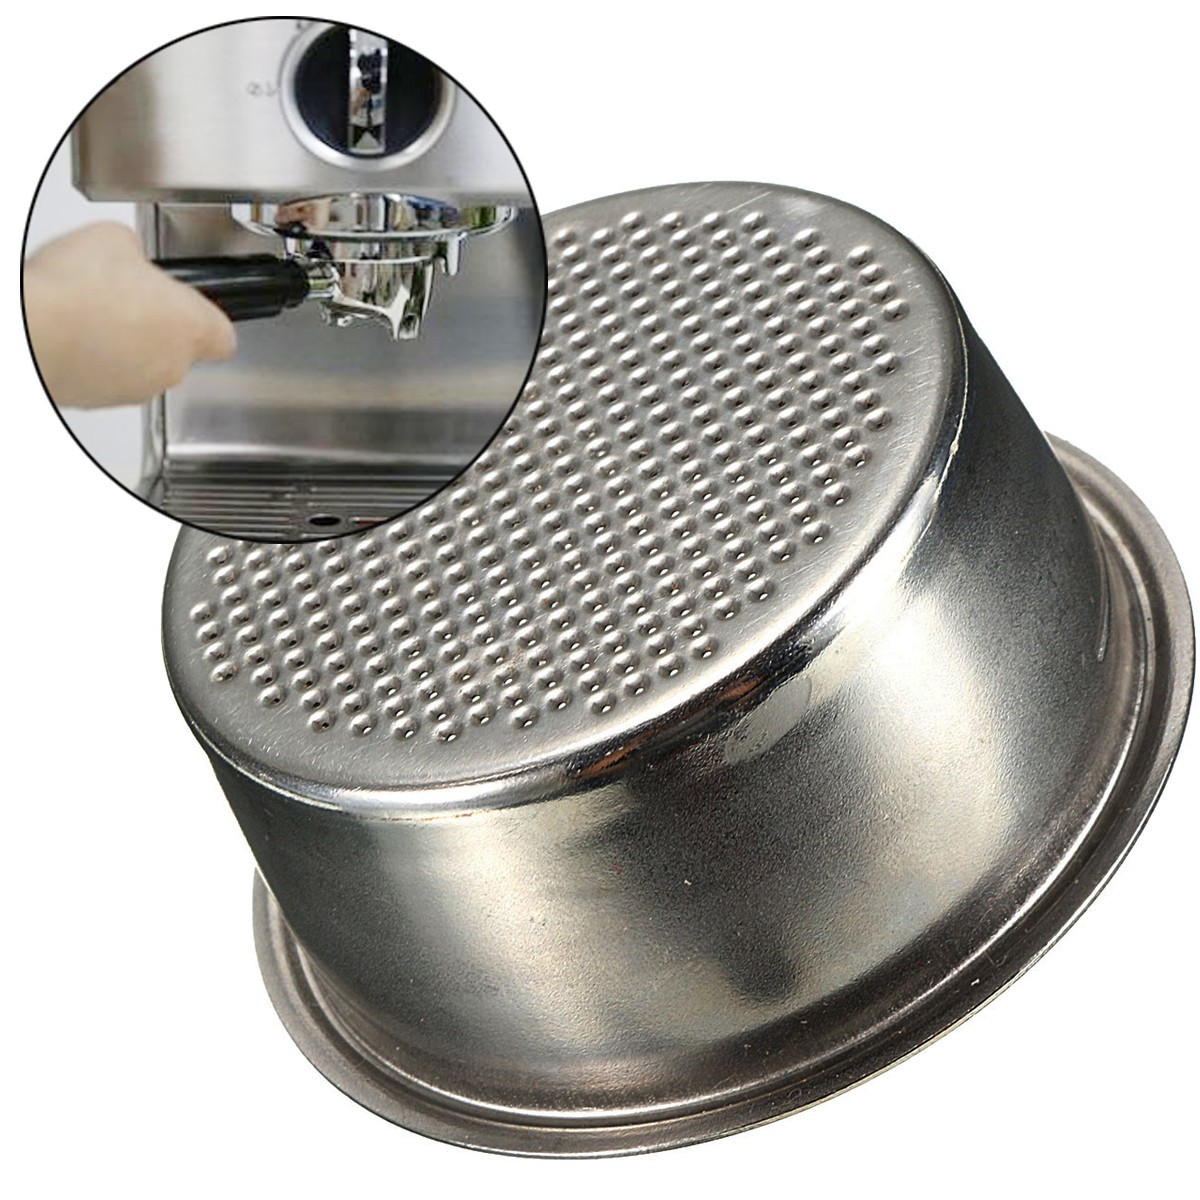 Dia 51mm Stainless Steel Non Pressurized Filter Basket Reusable Coffee Filter For Coffee Machine